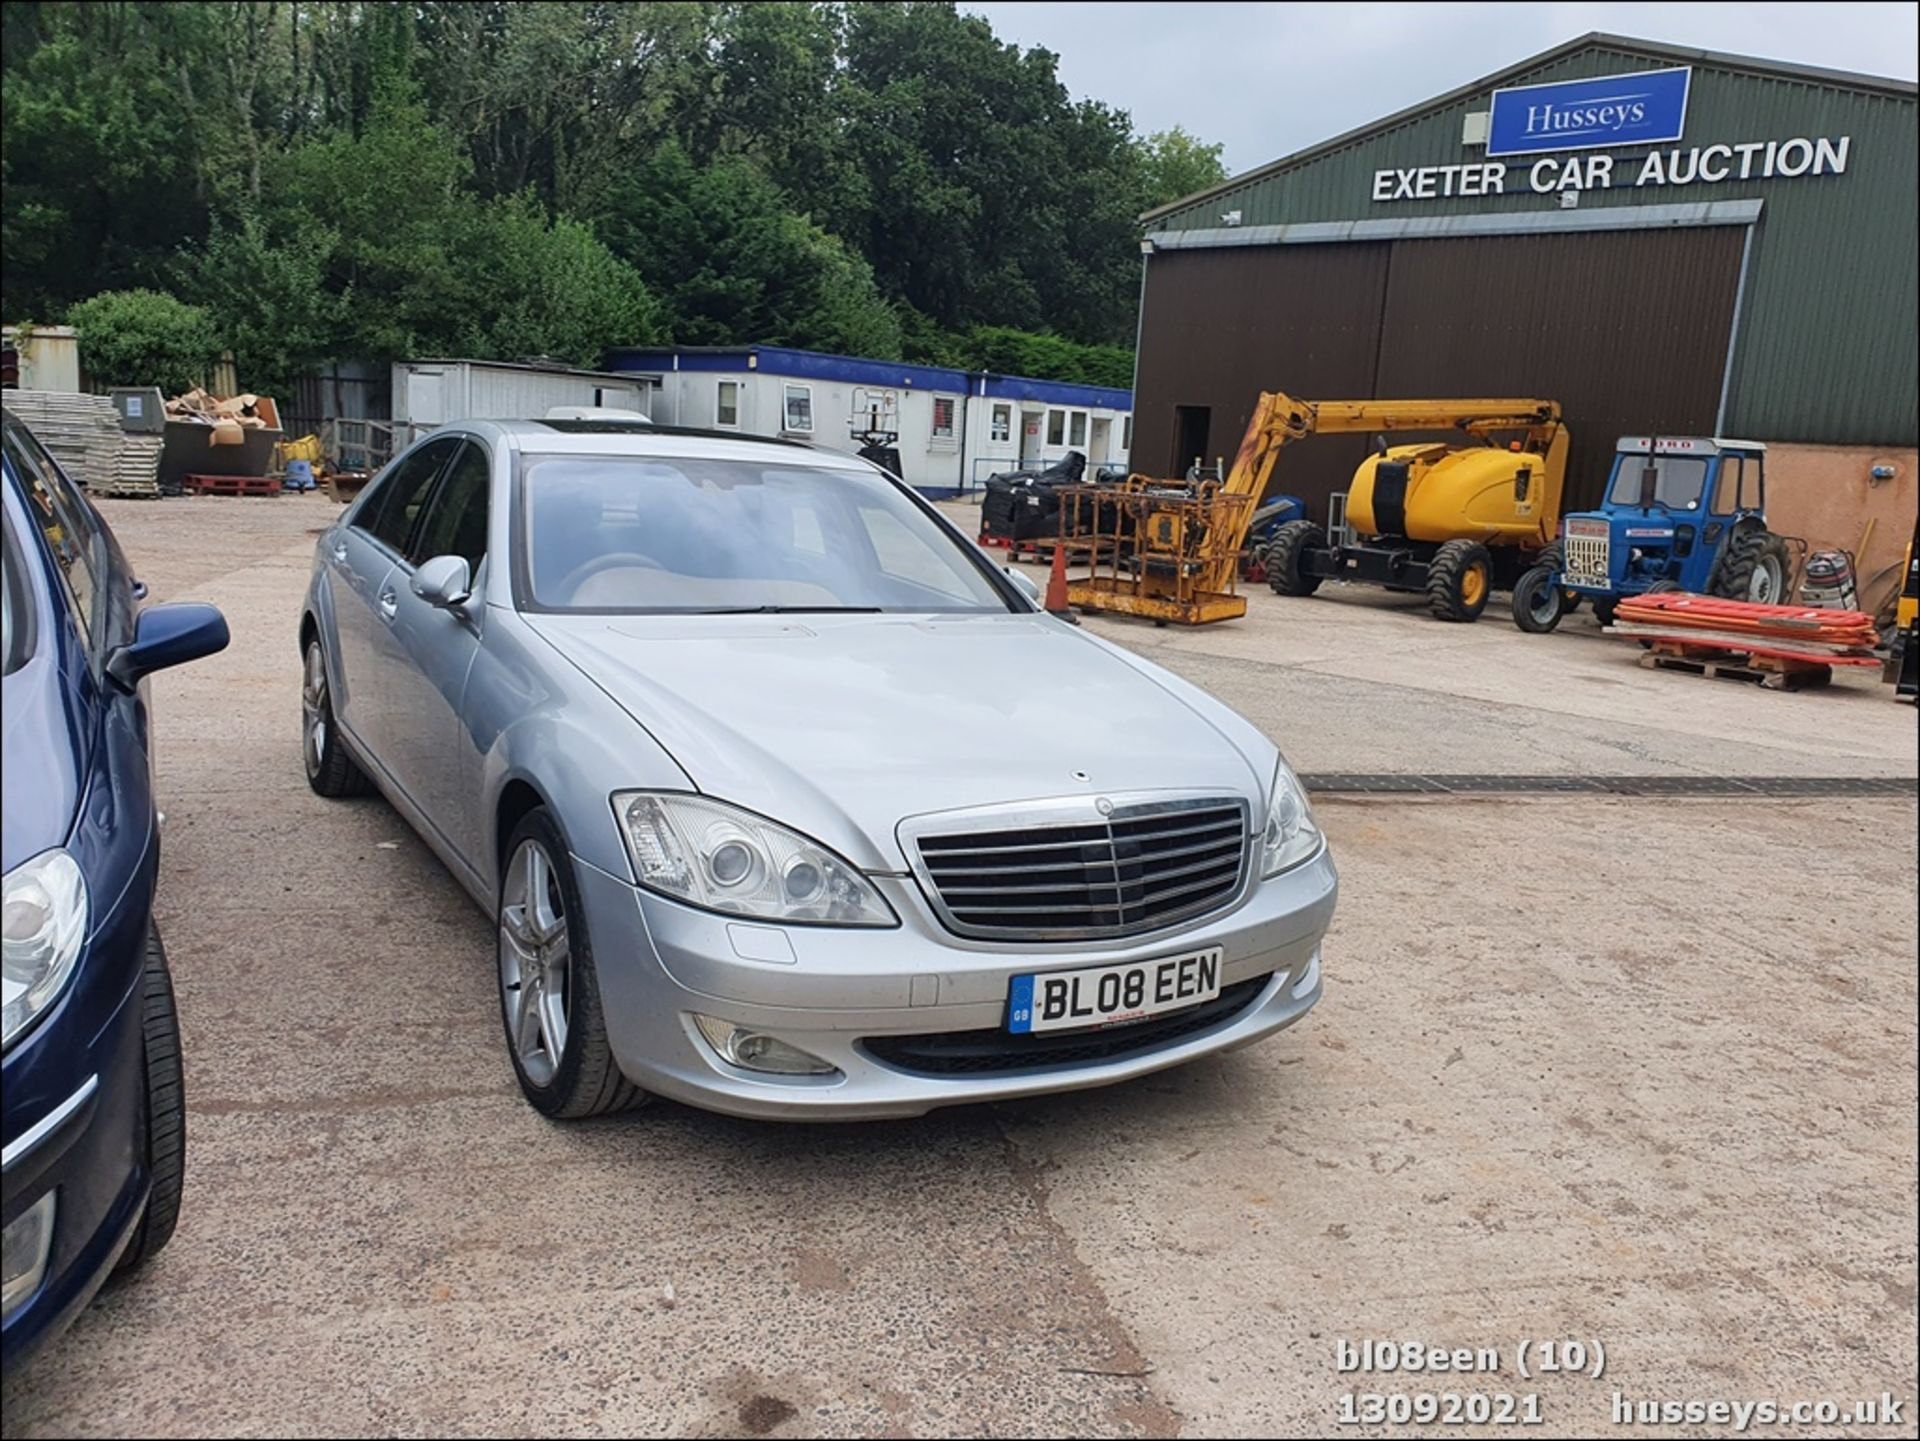 08/08 MERCEDES S320 CDI AUTO - 2987cc 4dr Saloon (Silver, 205k) - Image 10 of 16